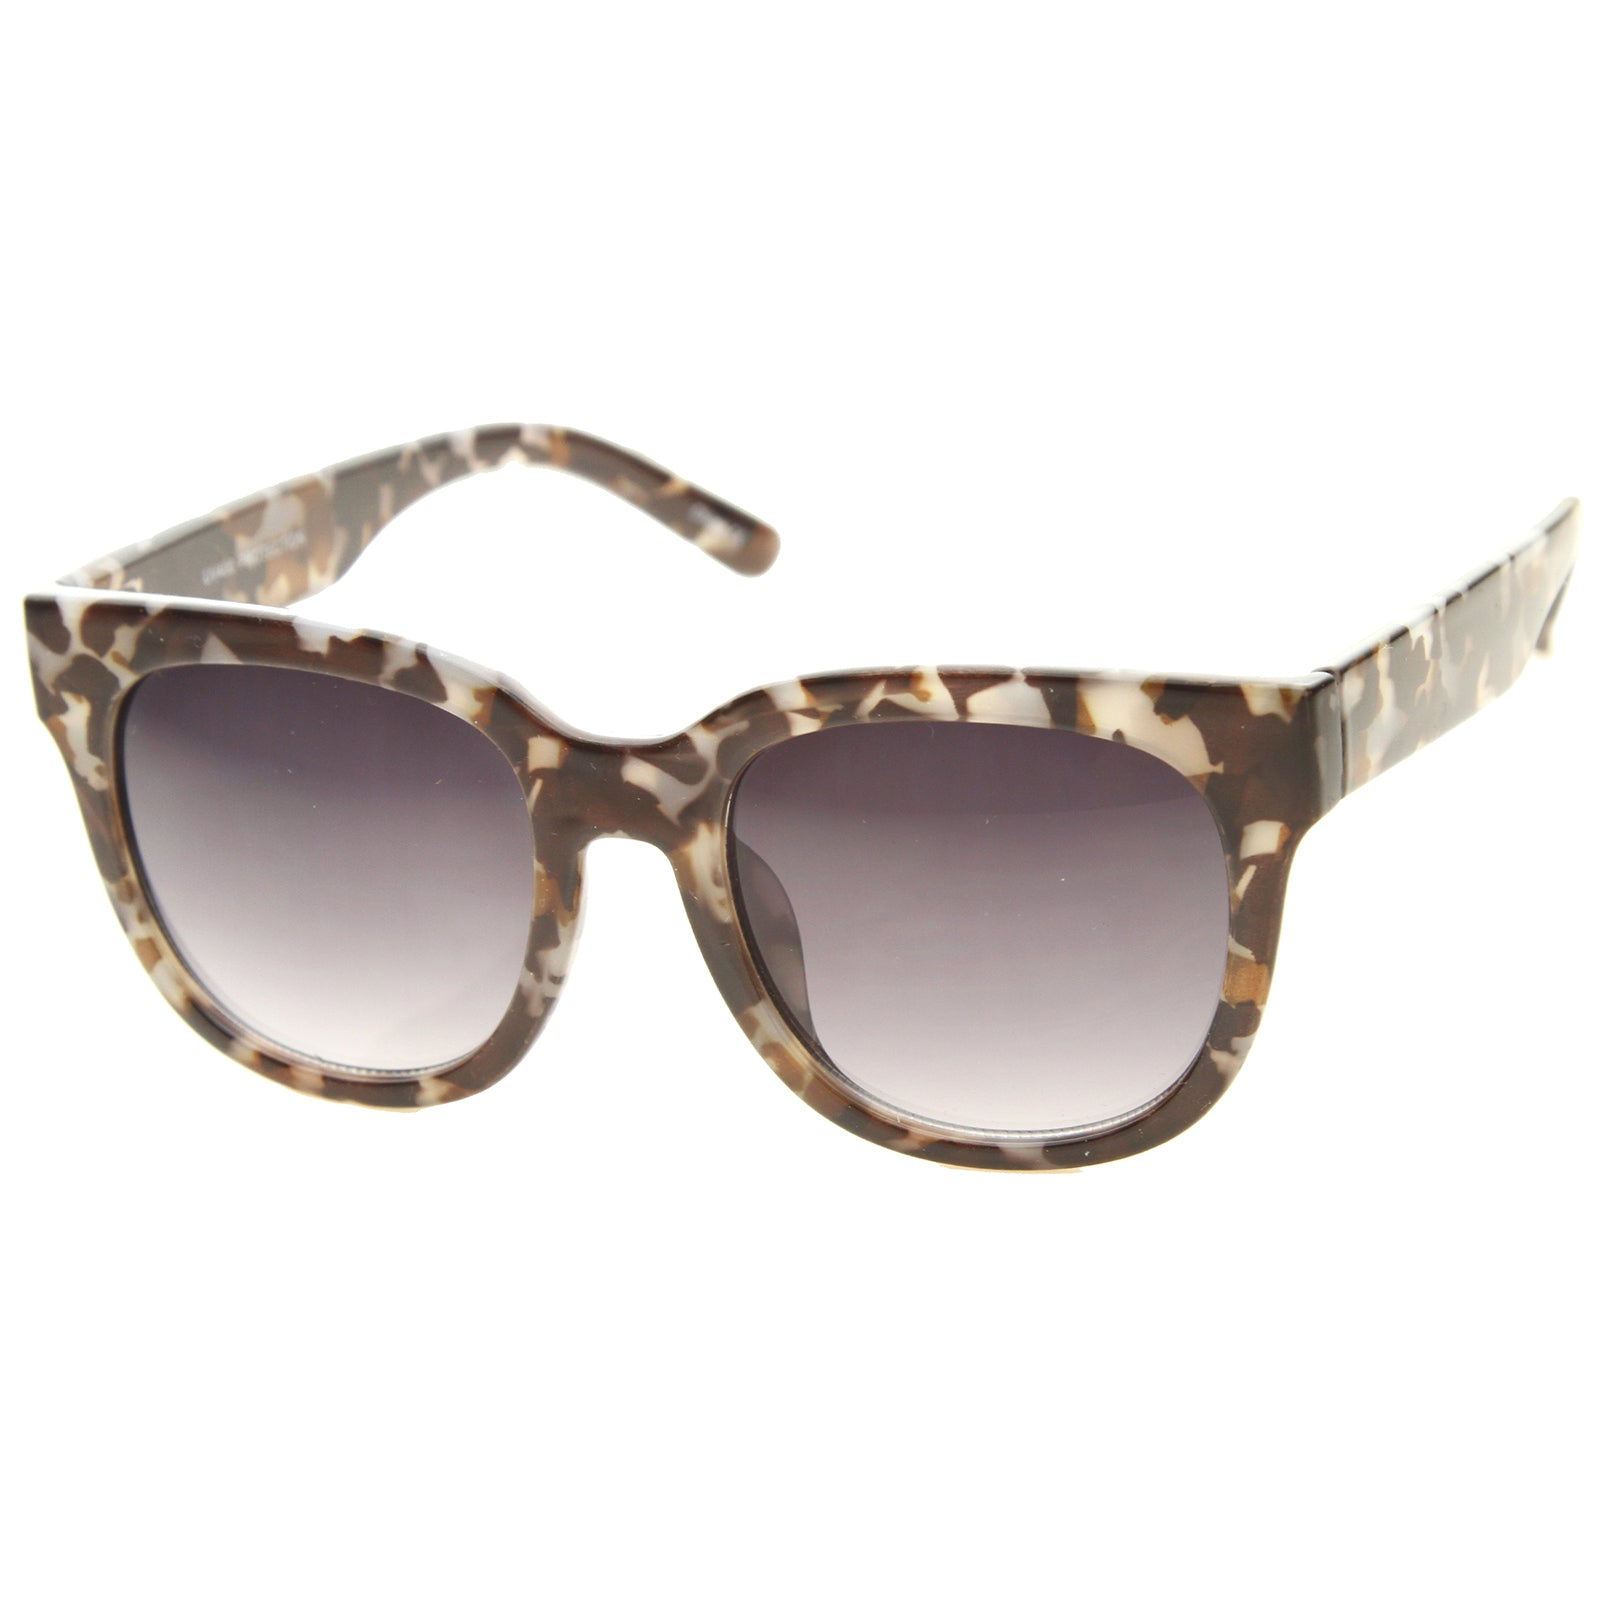 Womens Cat Eye Sunglasses With UV400 Protected Gradient Lens - sunglass.la - 2